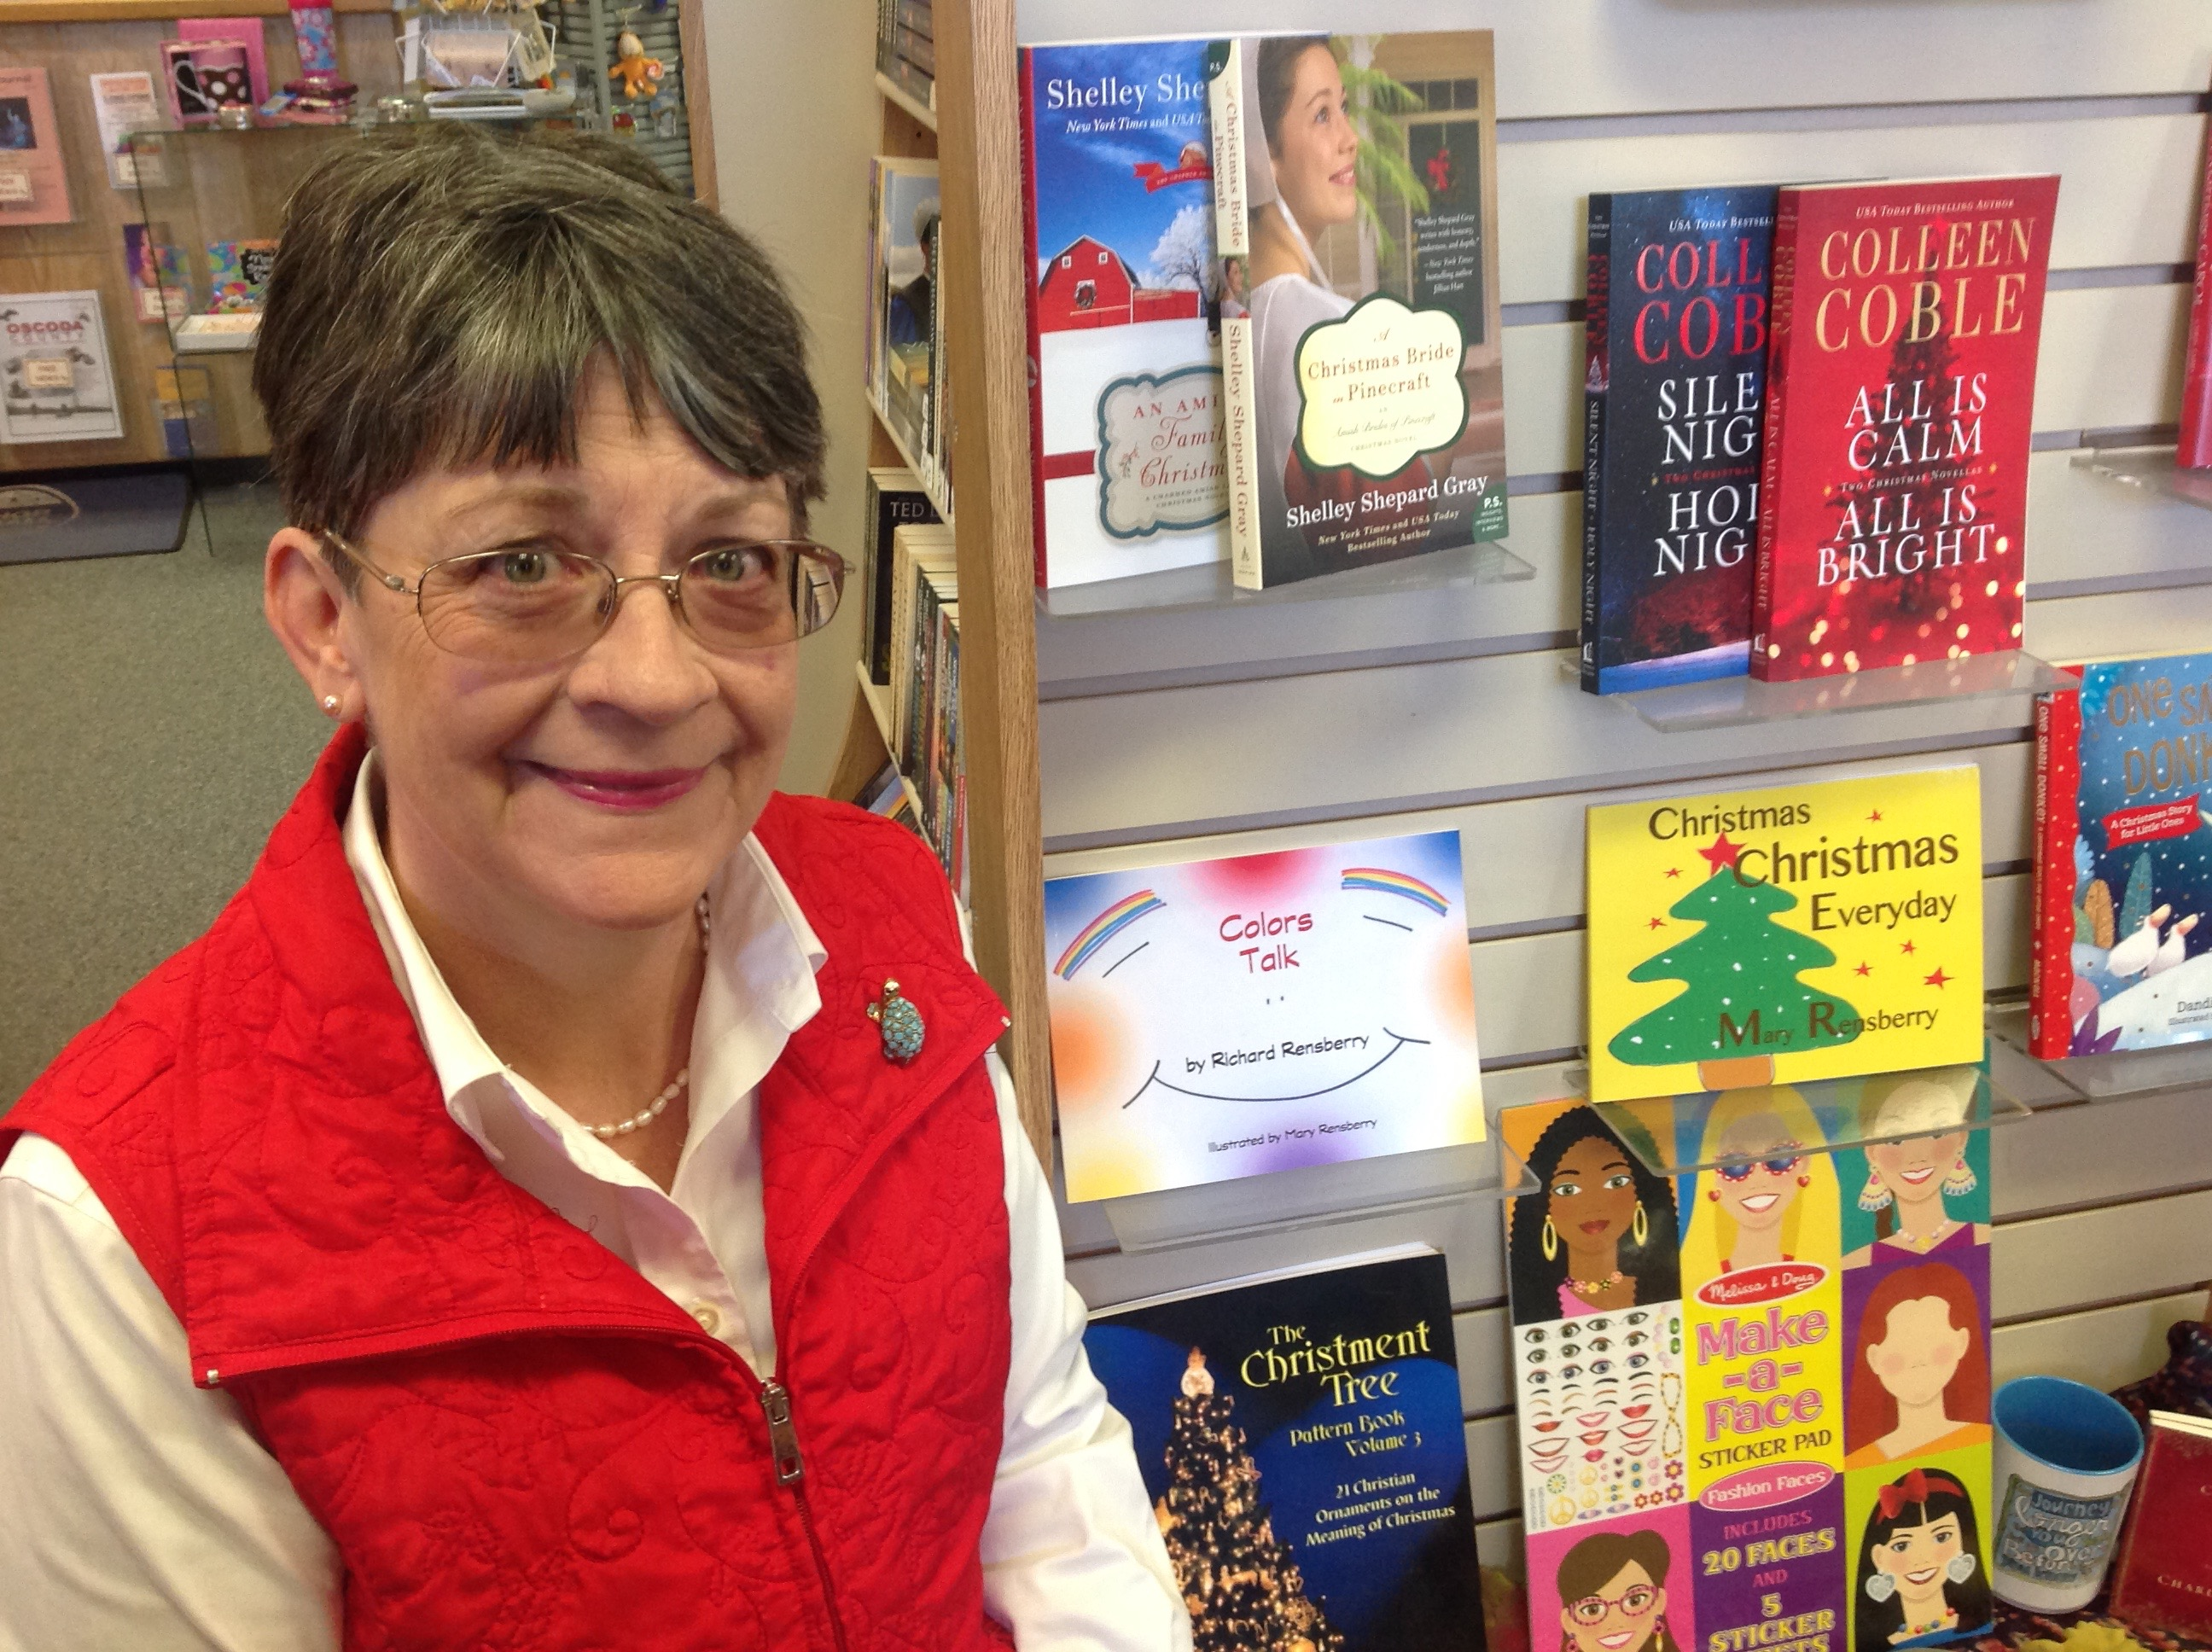 Books Make booms author and illustrator Mary Rensberry displaying custom books created for Small Business Marketing.